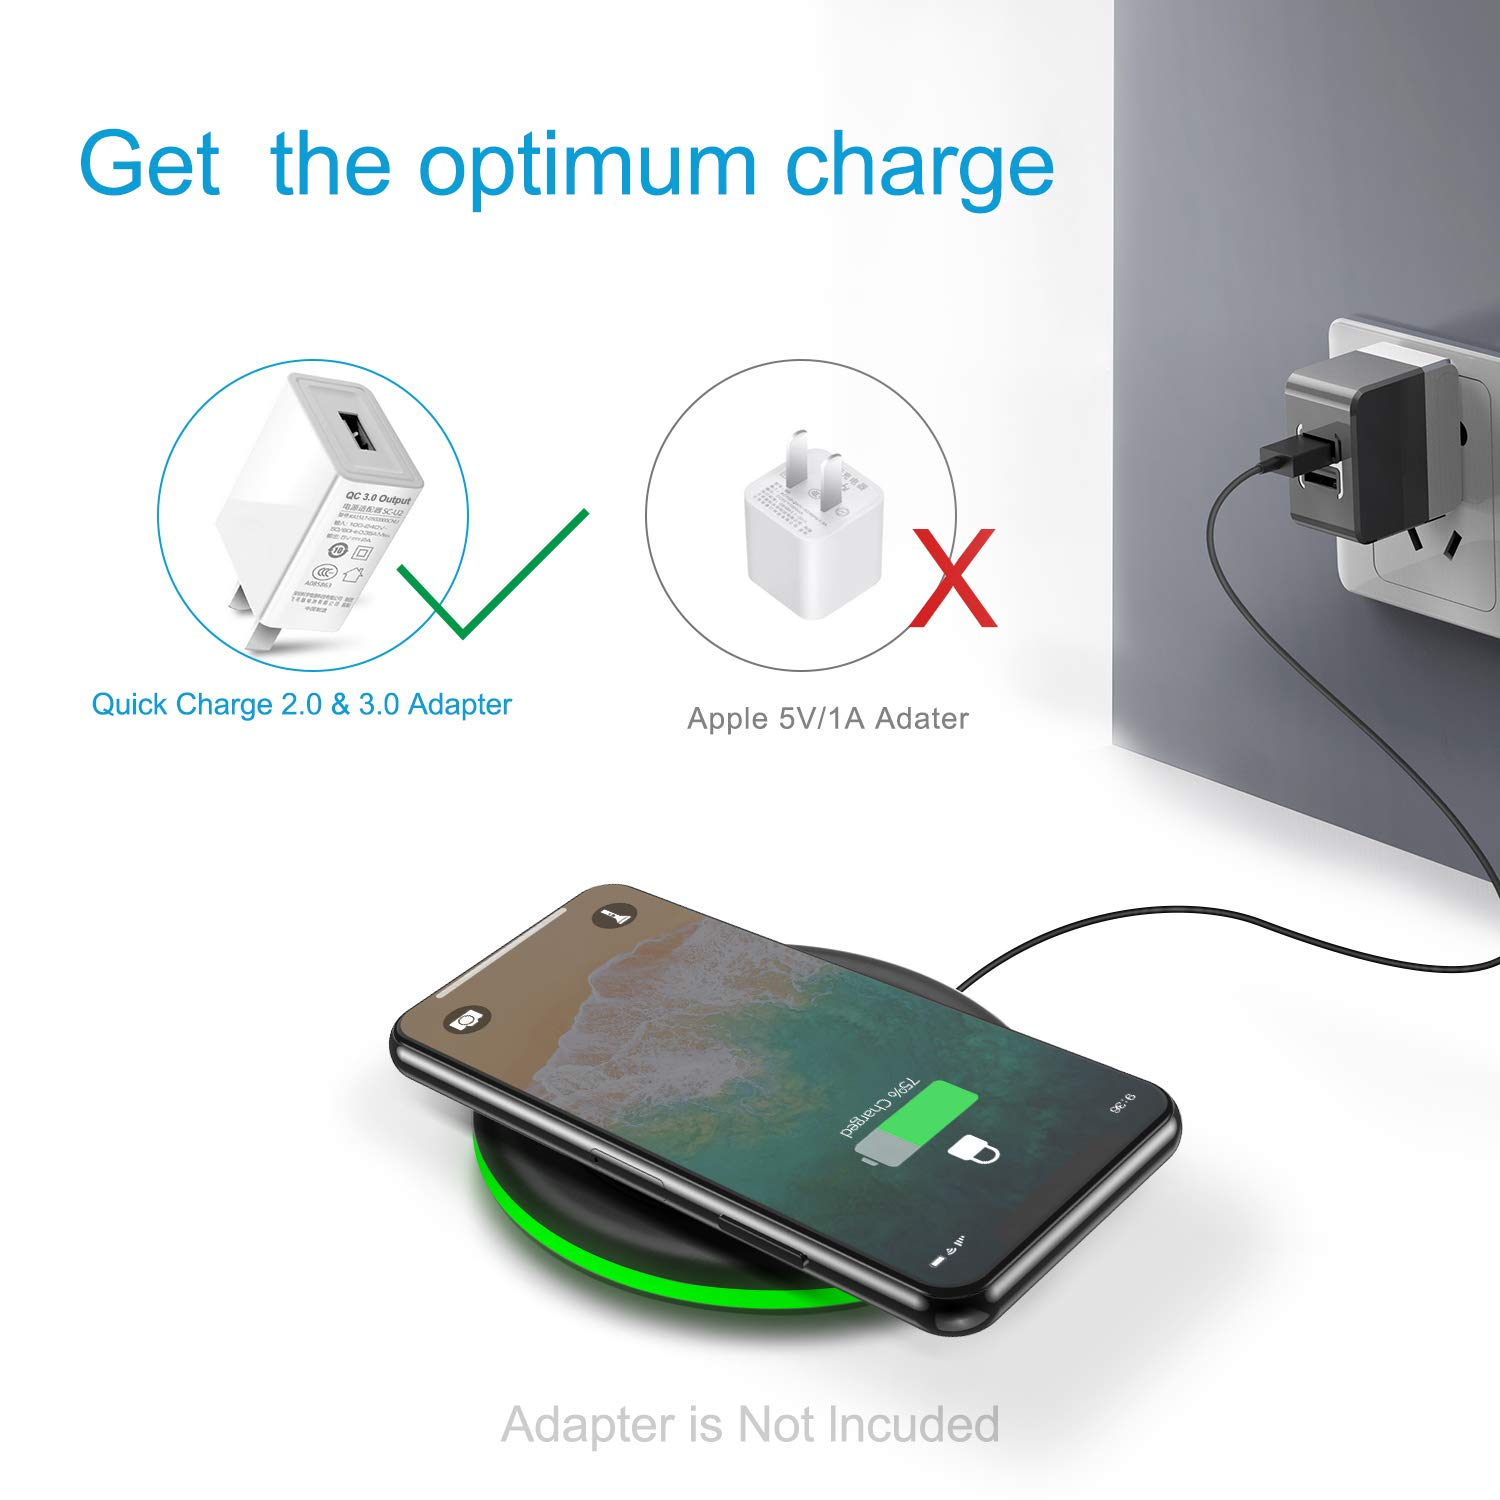 Wireless Charger 10W Qi Fast Wireless Charging Pad, 7.5W Compatible with iPhone 11,Pro,Max,XS Max,XR,XS,X,8,Plus, 10W for Samsung Galaxy Note 10/10+/9/8,S10 Plus S9 S8,AirPods and More (No AC Adapter)